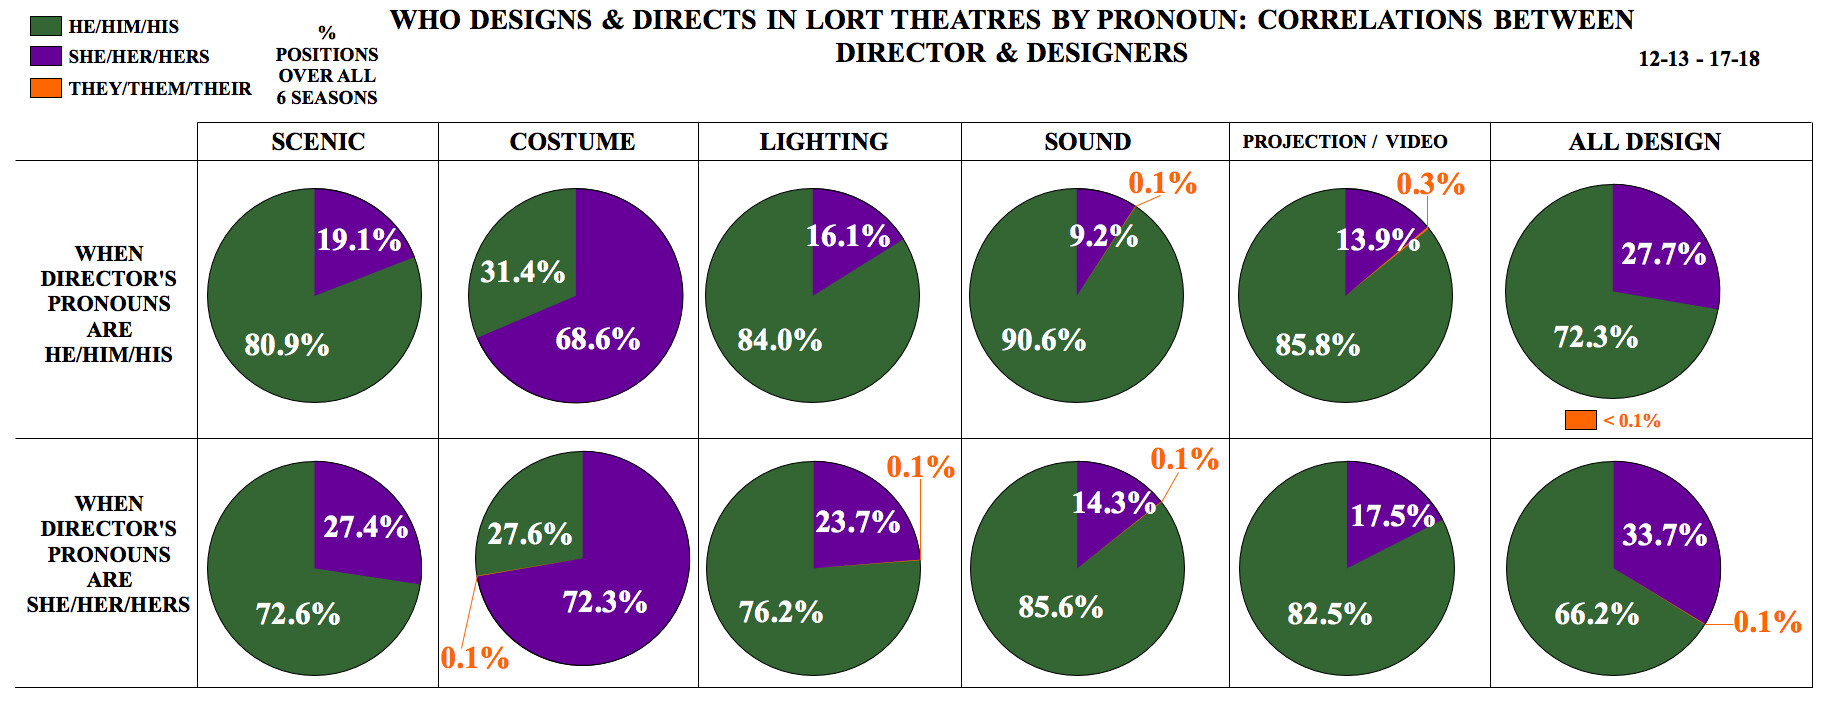 Who Designs & Directs in LORT Theatres by Pronoun: Correlations between Director & Designers